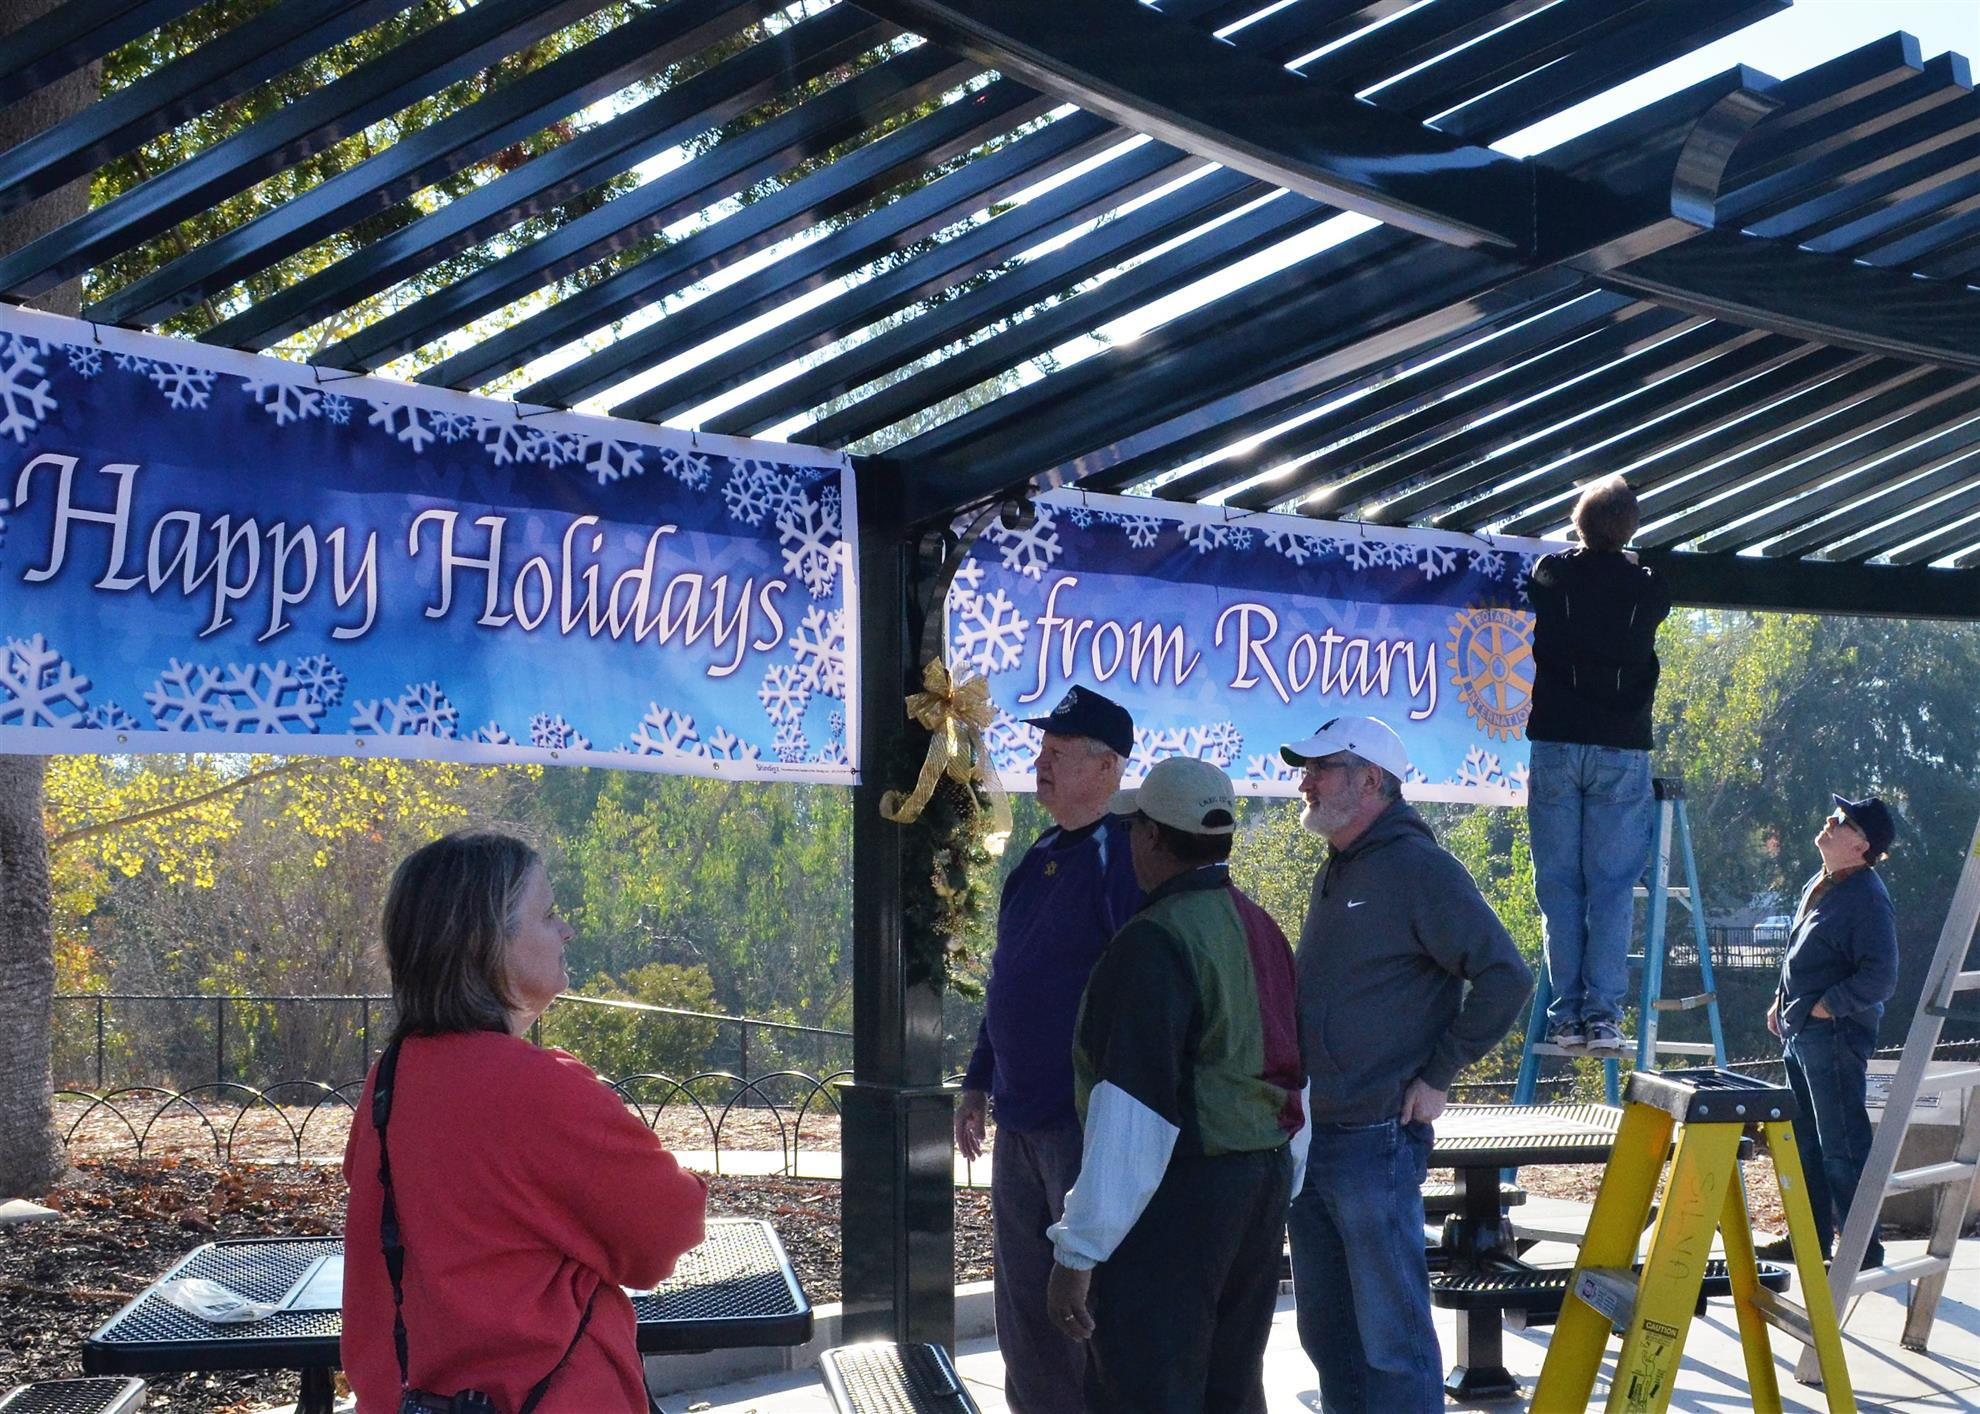 Rotary Club of Pleasanton and Pleasanton North Rotary joined forces Nov. 14 to decorate Rotary Park on Main Street for the holidays.  From left: Lara Golden, Brad Hirst, Don Lewis, Frank Hanna, Scott Raty and Larry Annis.  Photo by Jim Brice